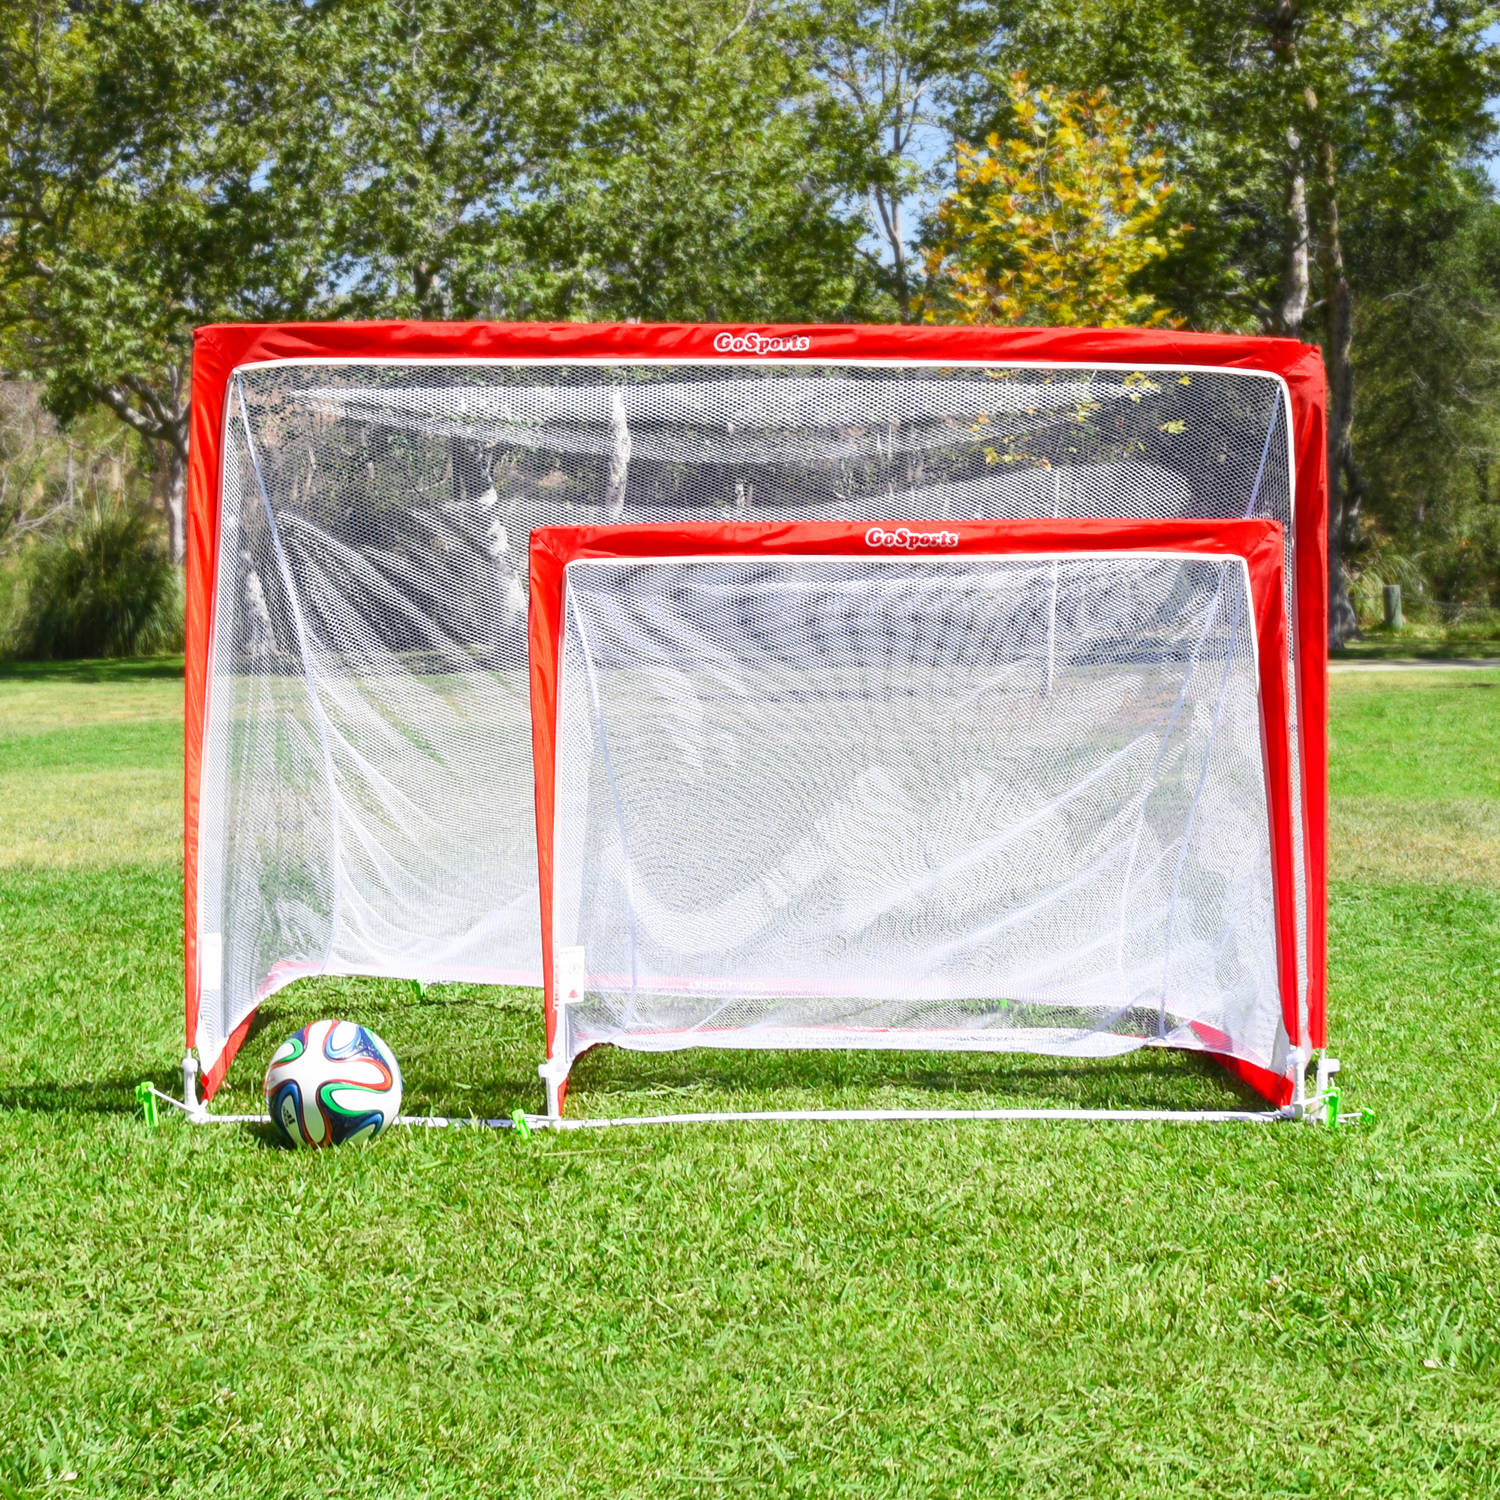 da0f38c85 GoSports 4' Portable Pop-Up Soccer Goal, Set of 2, with 6 Cones and Case -  Walmart.com